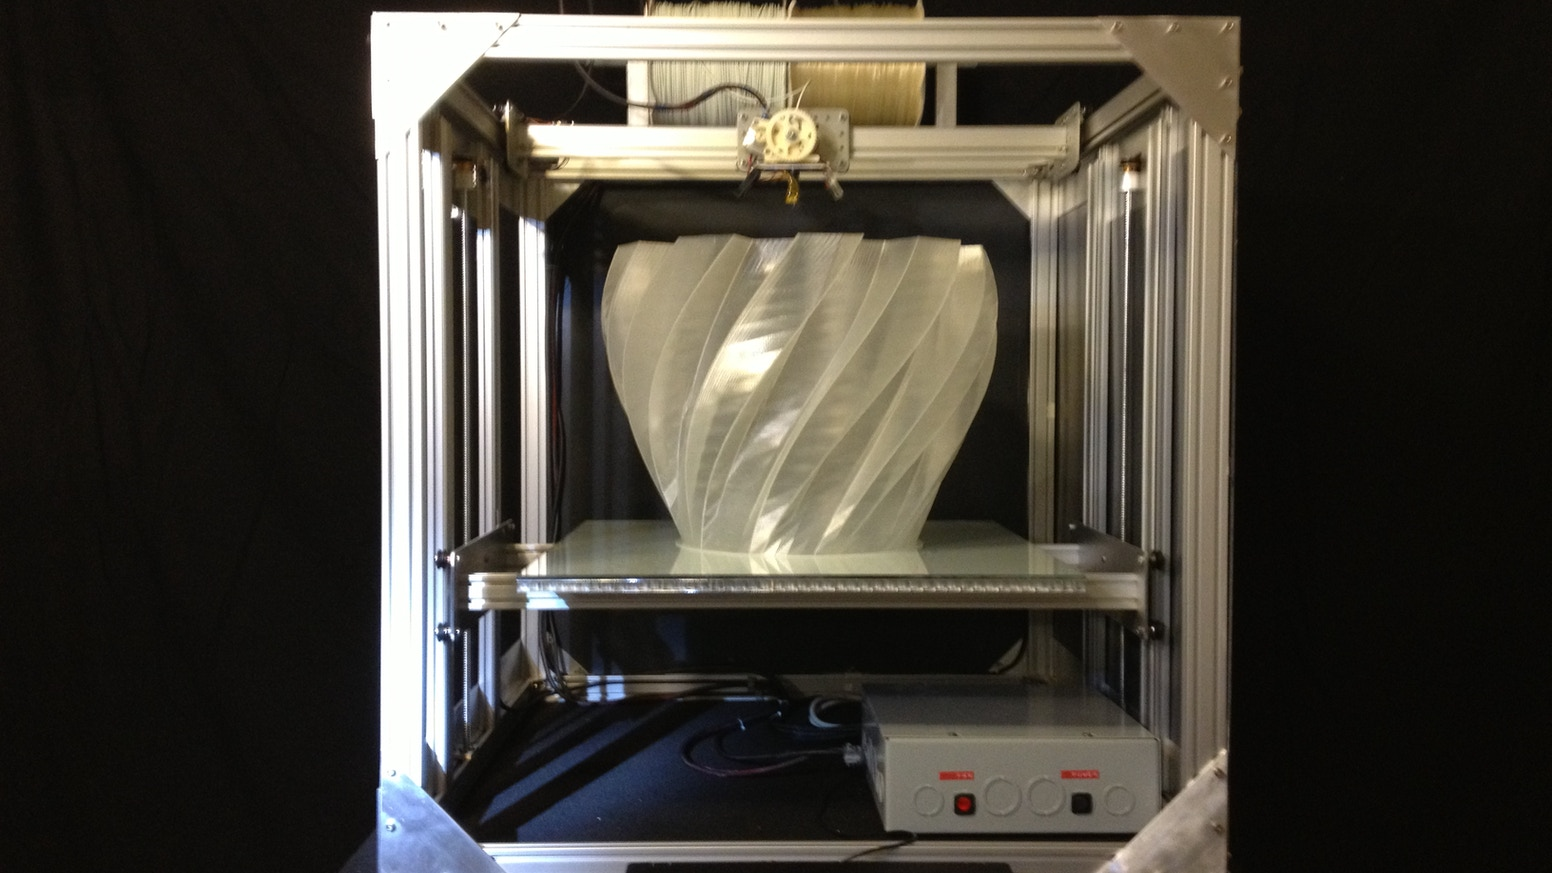 Dream big, print big! Affordable, large-format 3D printing for your home or business.